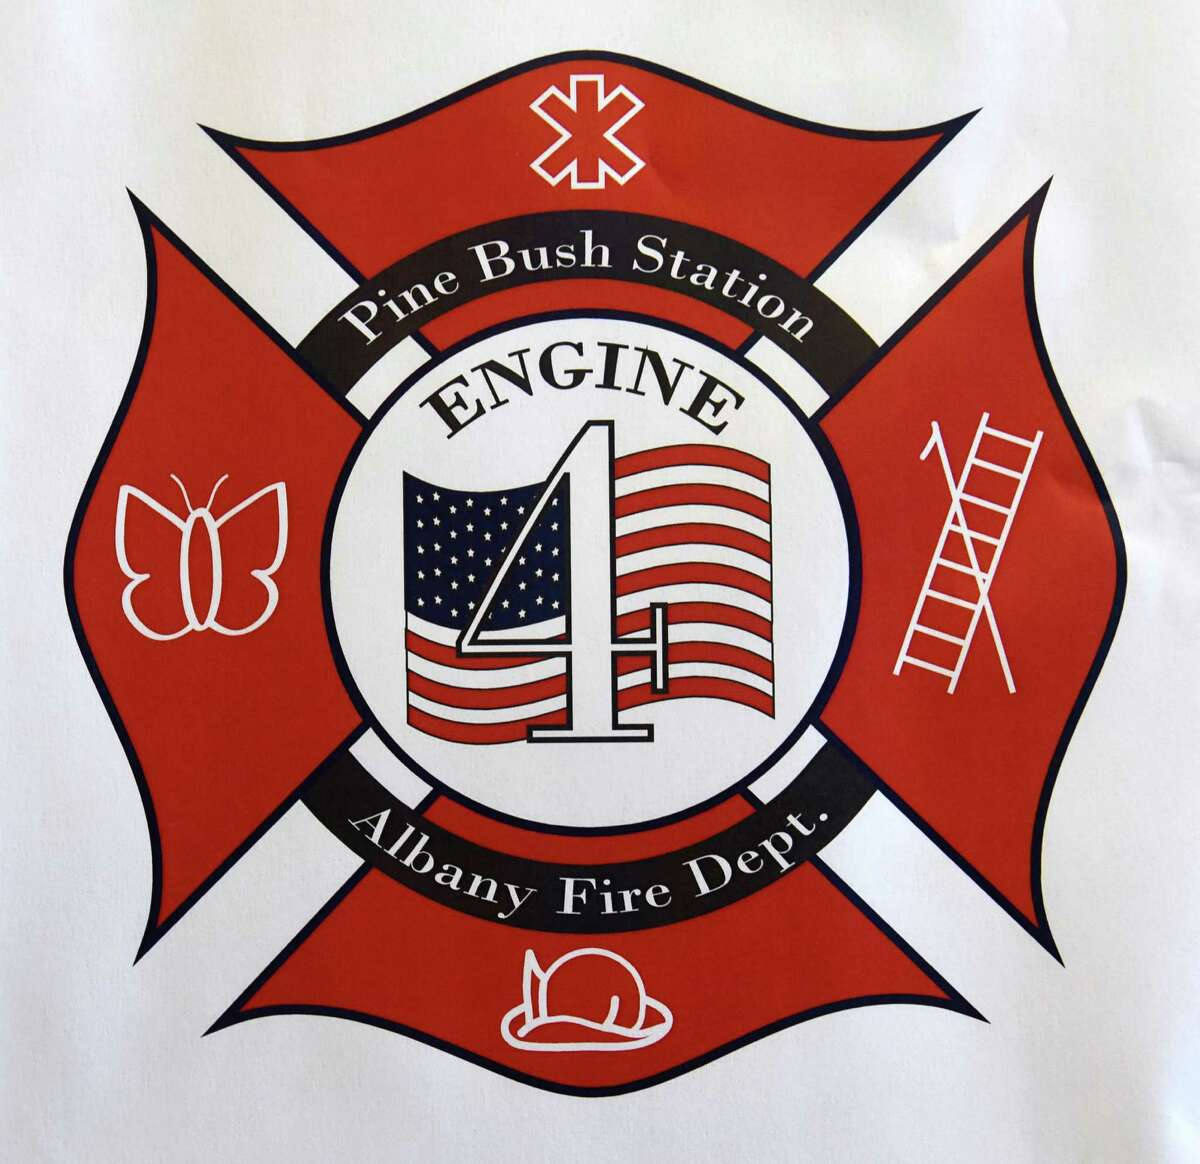 Patch design made by Isobella Grubb-Kavach which received the first place award after members of the Albany Fire Department and Mayor Kathy Sheehan selected three design finalists for their new Engine 4 patch at Tech Valley High School located at SUNY Poly campus on Monday, Oct. 31, 2016 in Albany N.Y. Her winning design will form the basis for a new patch that will be worn on uniforms of the firefighters from Engine 4, which covers Washington Avenue Extension area. (Lori Van Buren / Times Union)